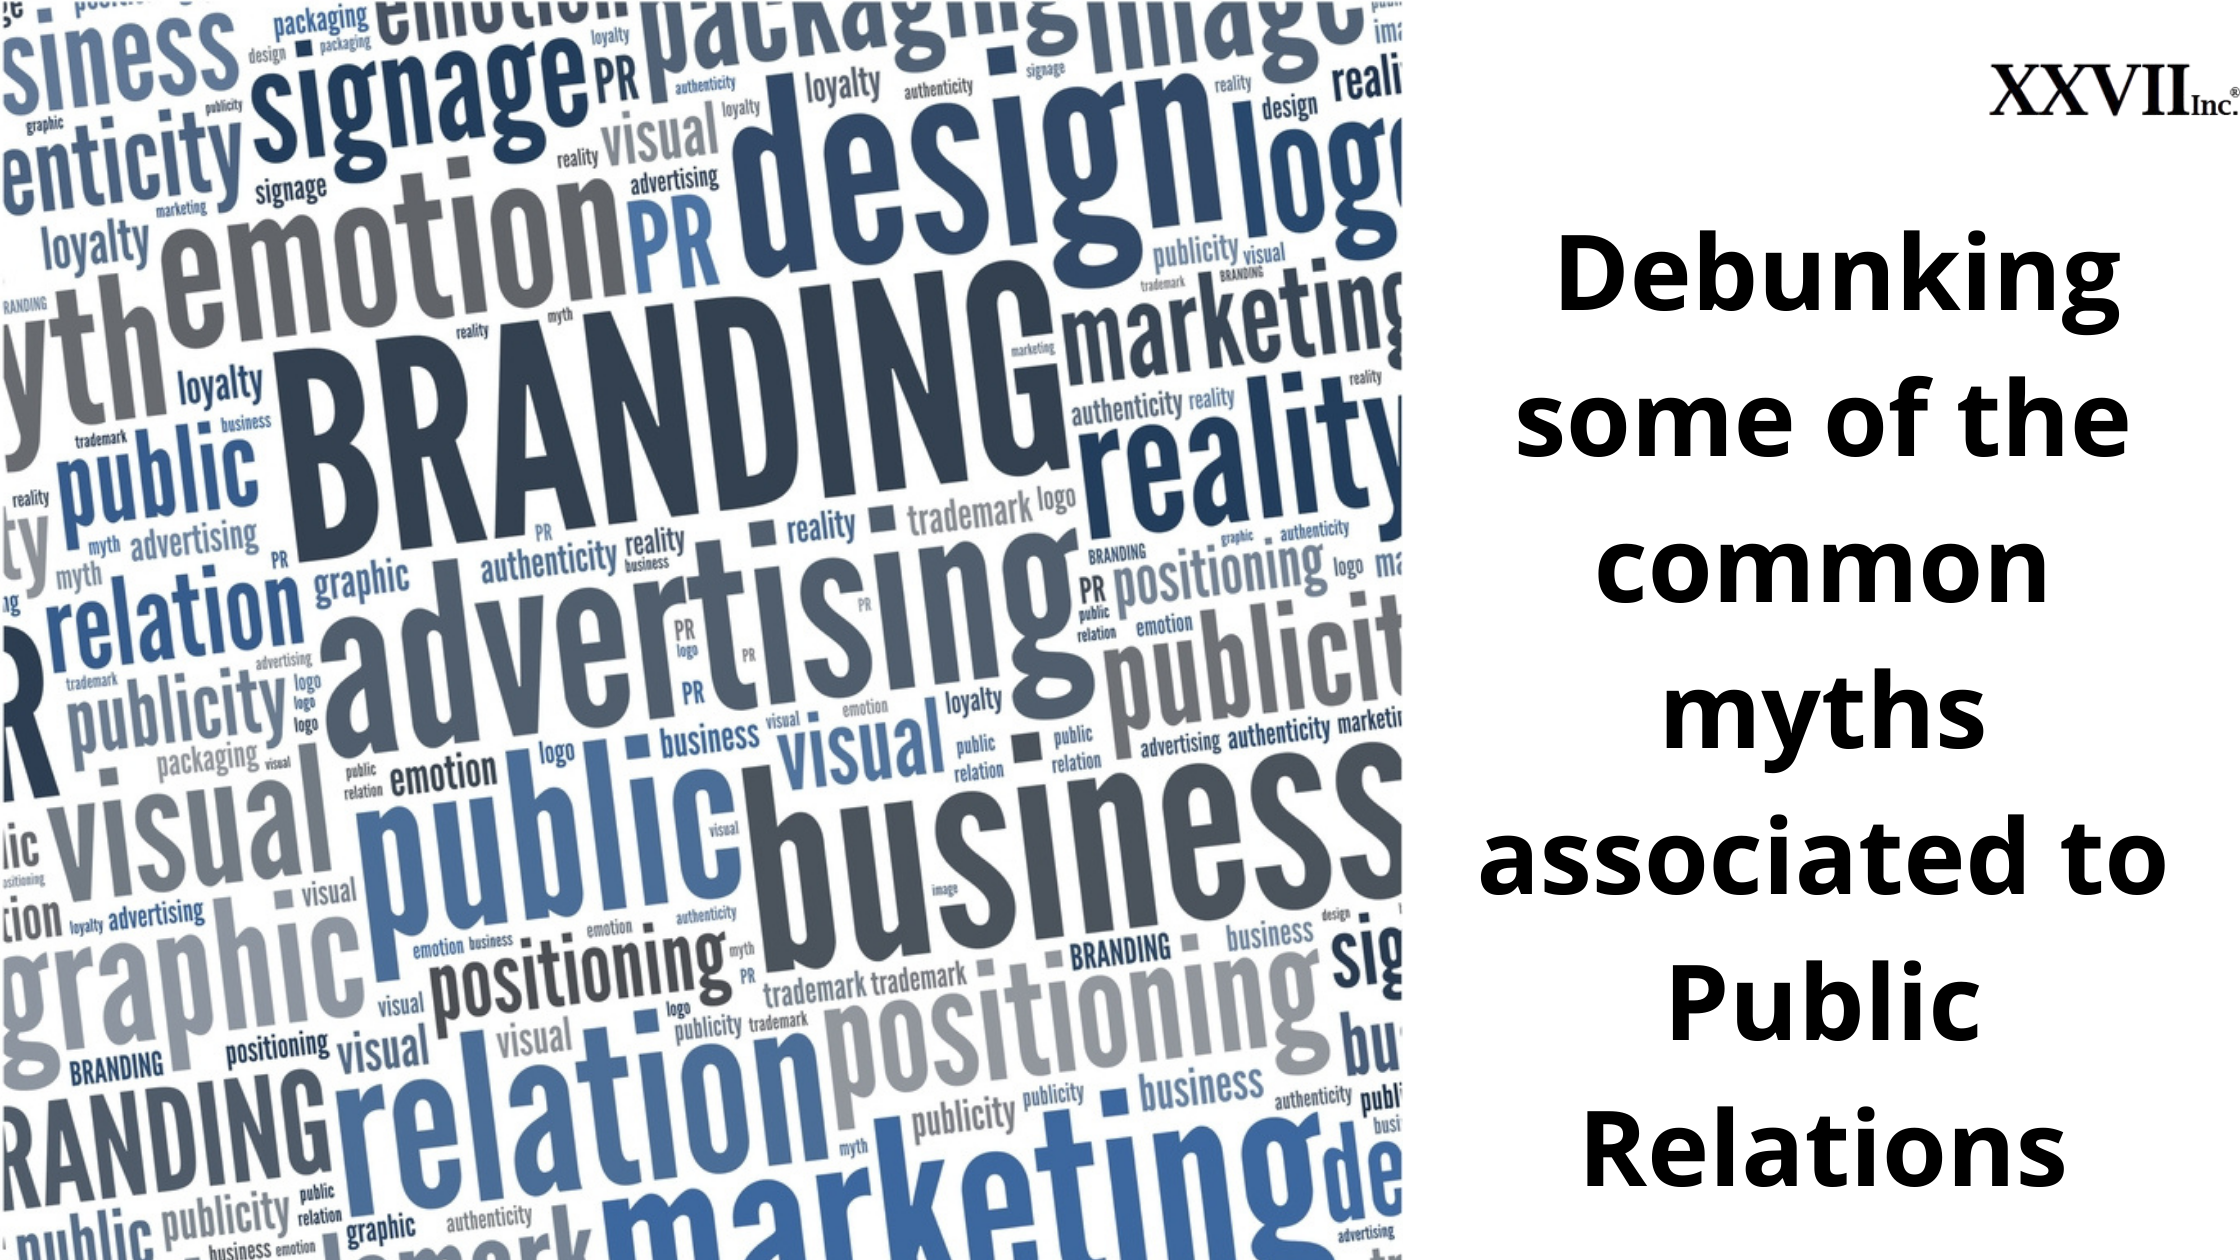 Debunking some of the common myths associated with Public Relations